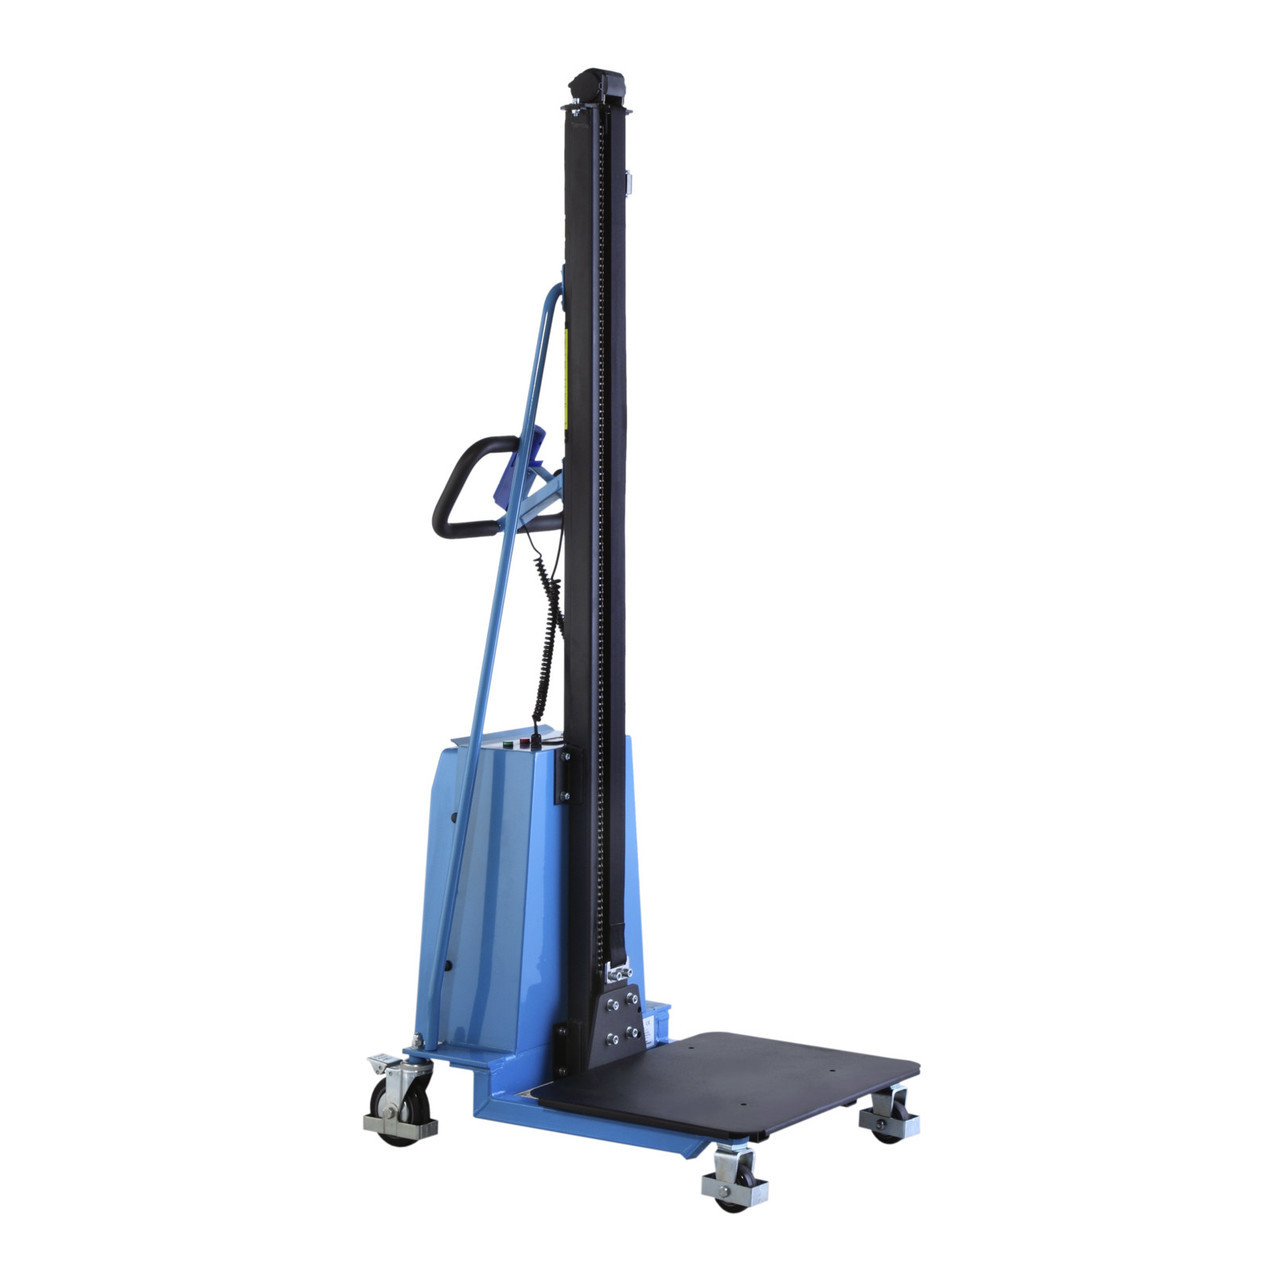 2 Ton Walk Behind Pallet Stacker Electric Forklift Price 1: HanseLifter E-MES250-19 : 250kg